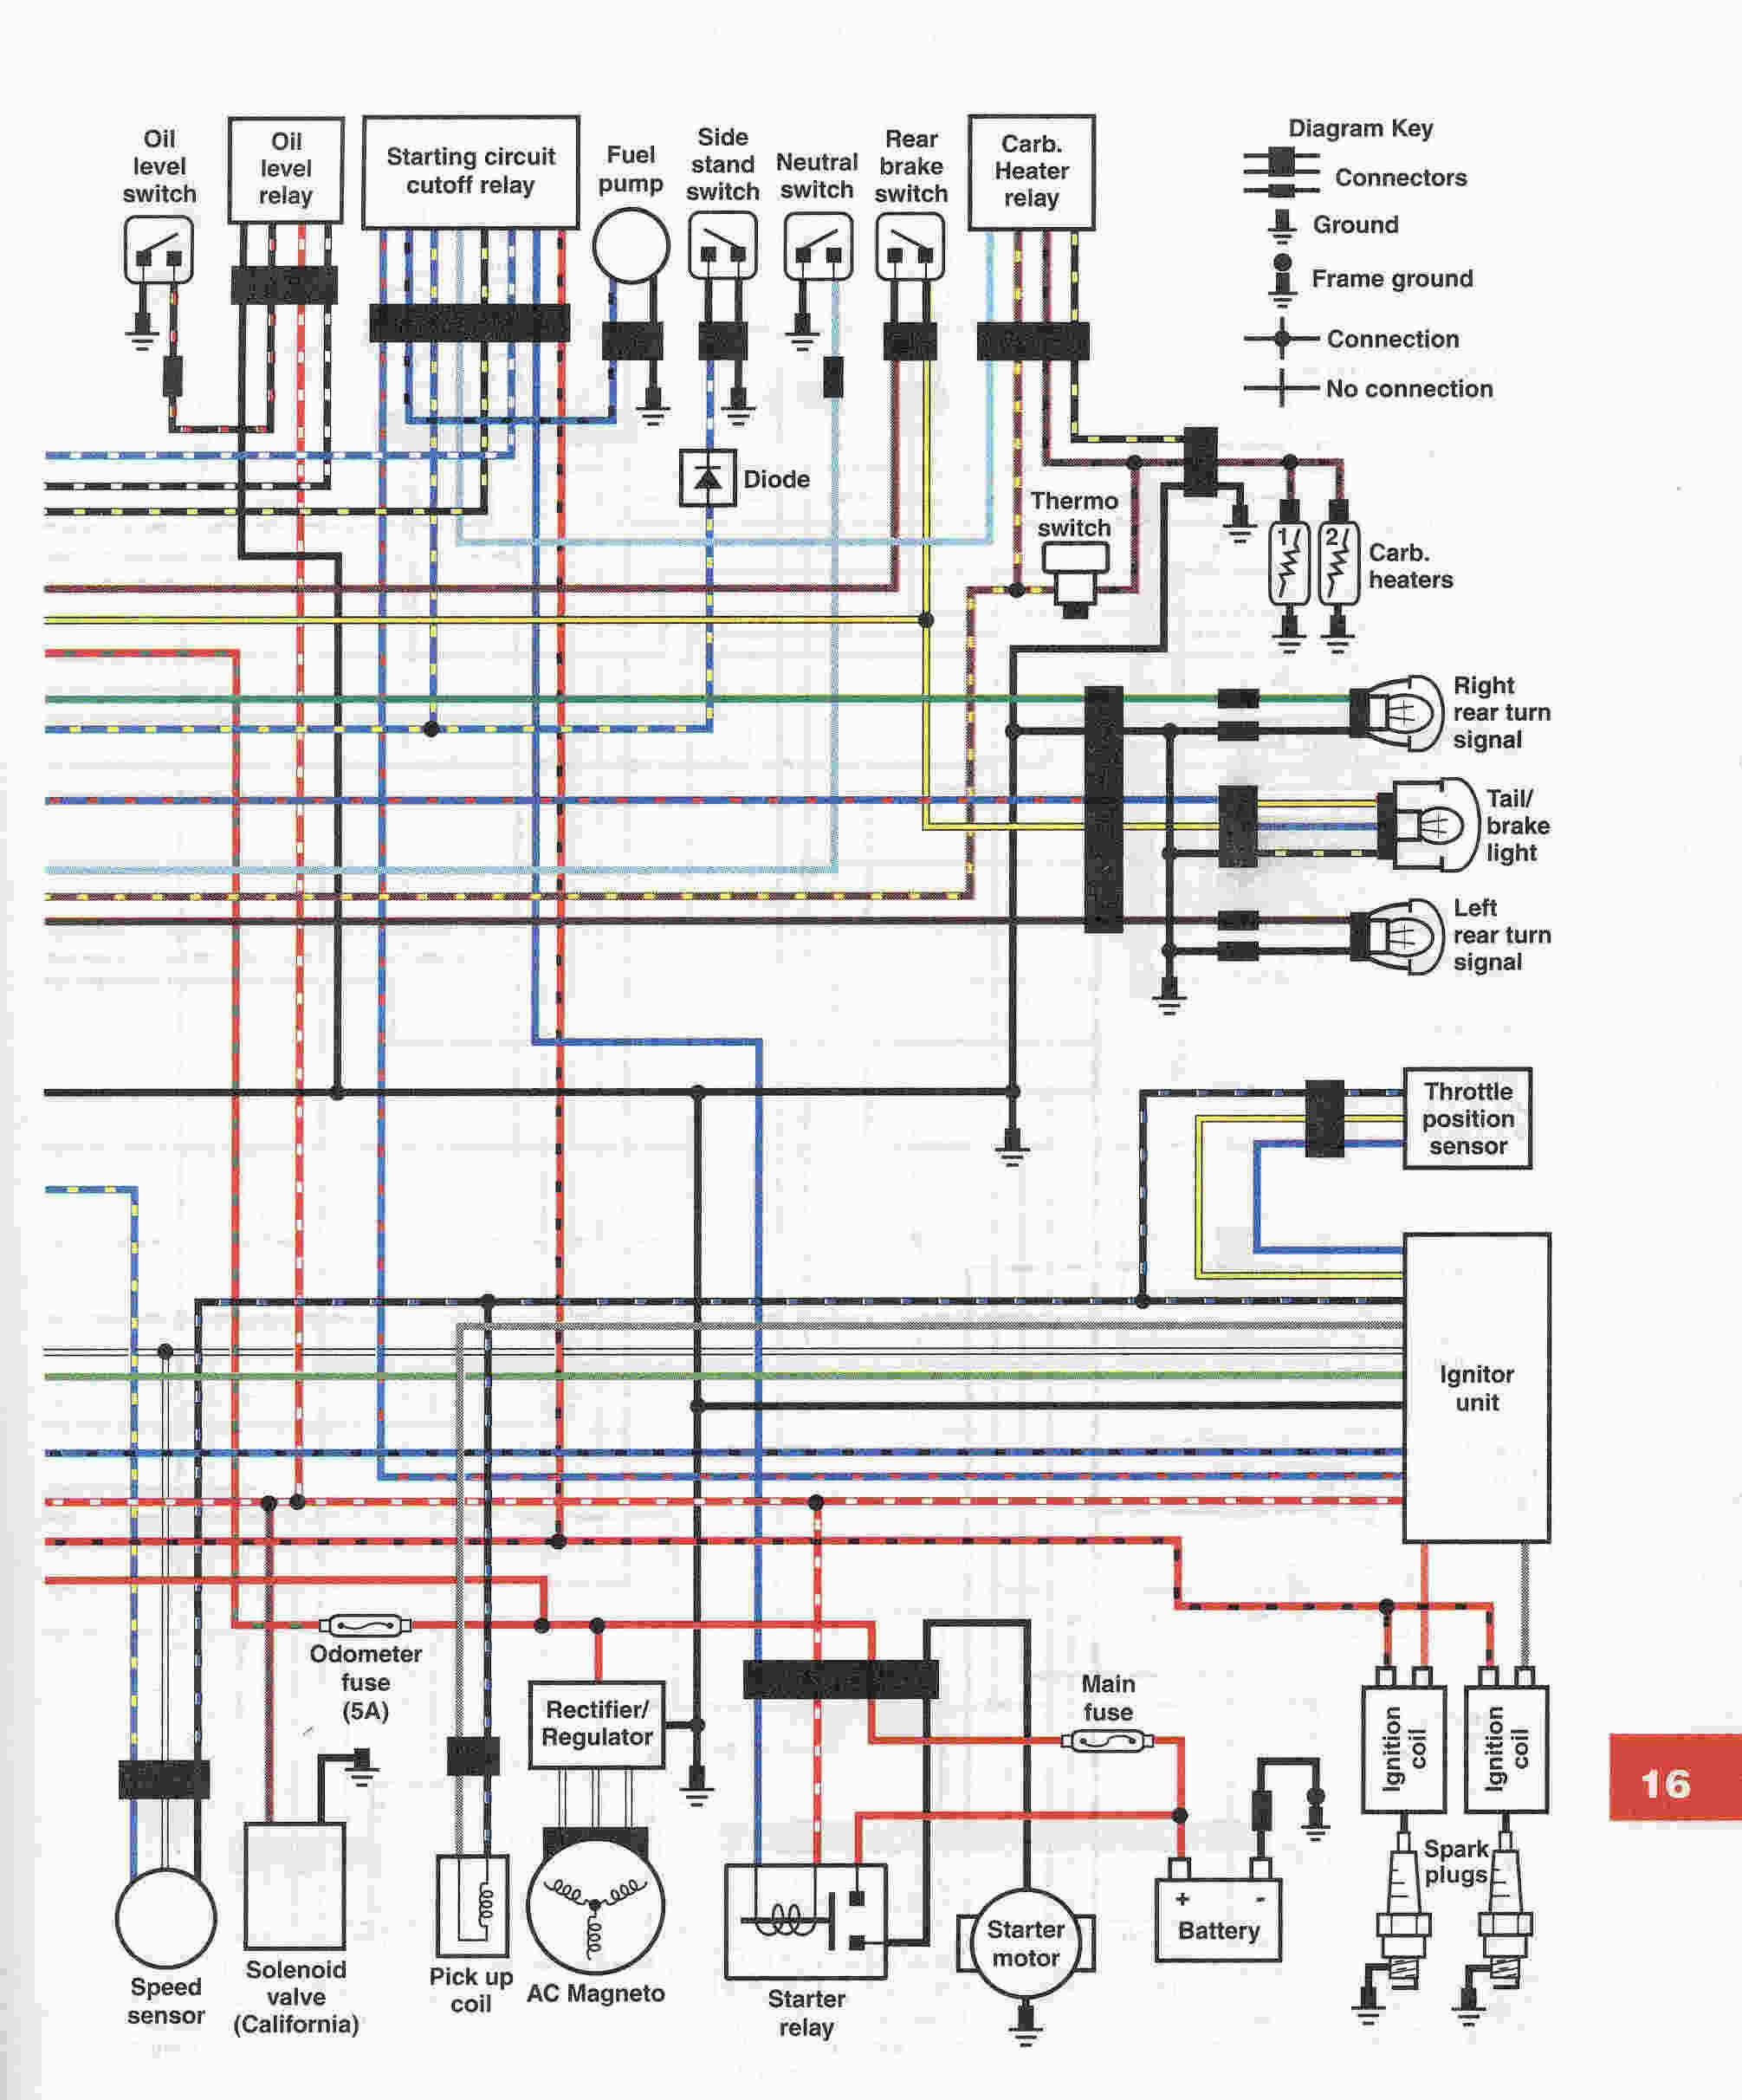 wiring diagram yamaha v star 1100 wiring diagram fascinating yamaha v-star 1100 wiring diagram yamaha v star wiring diagram #1